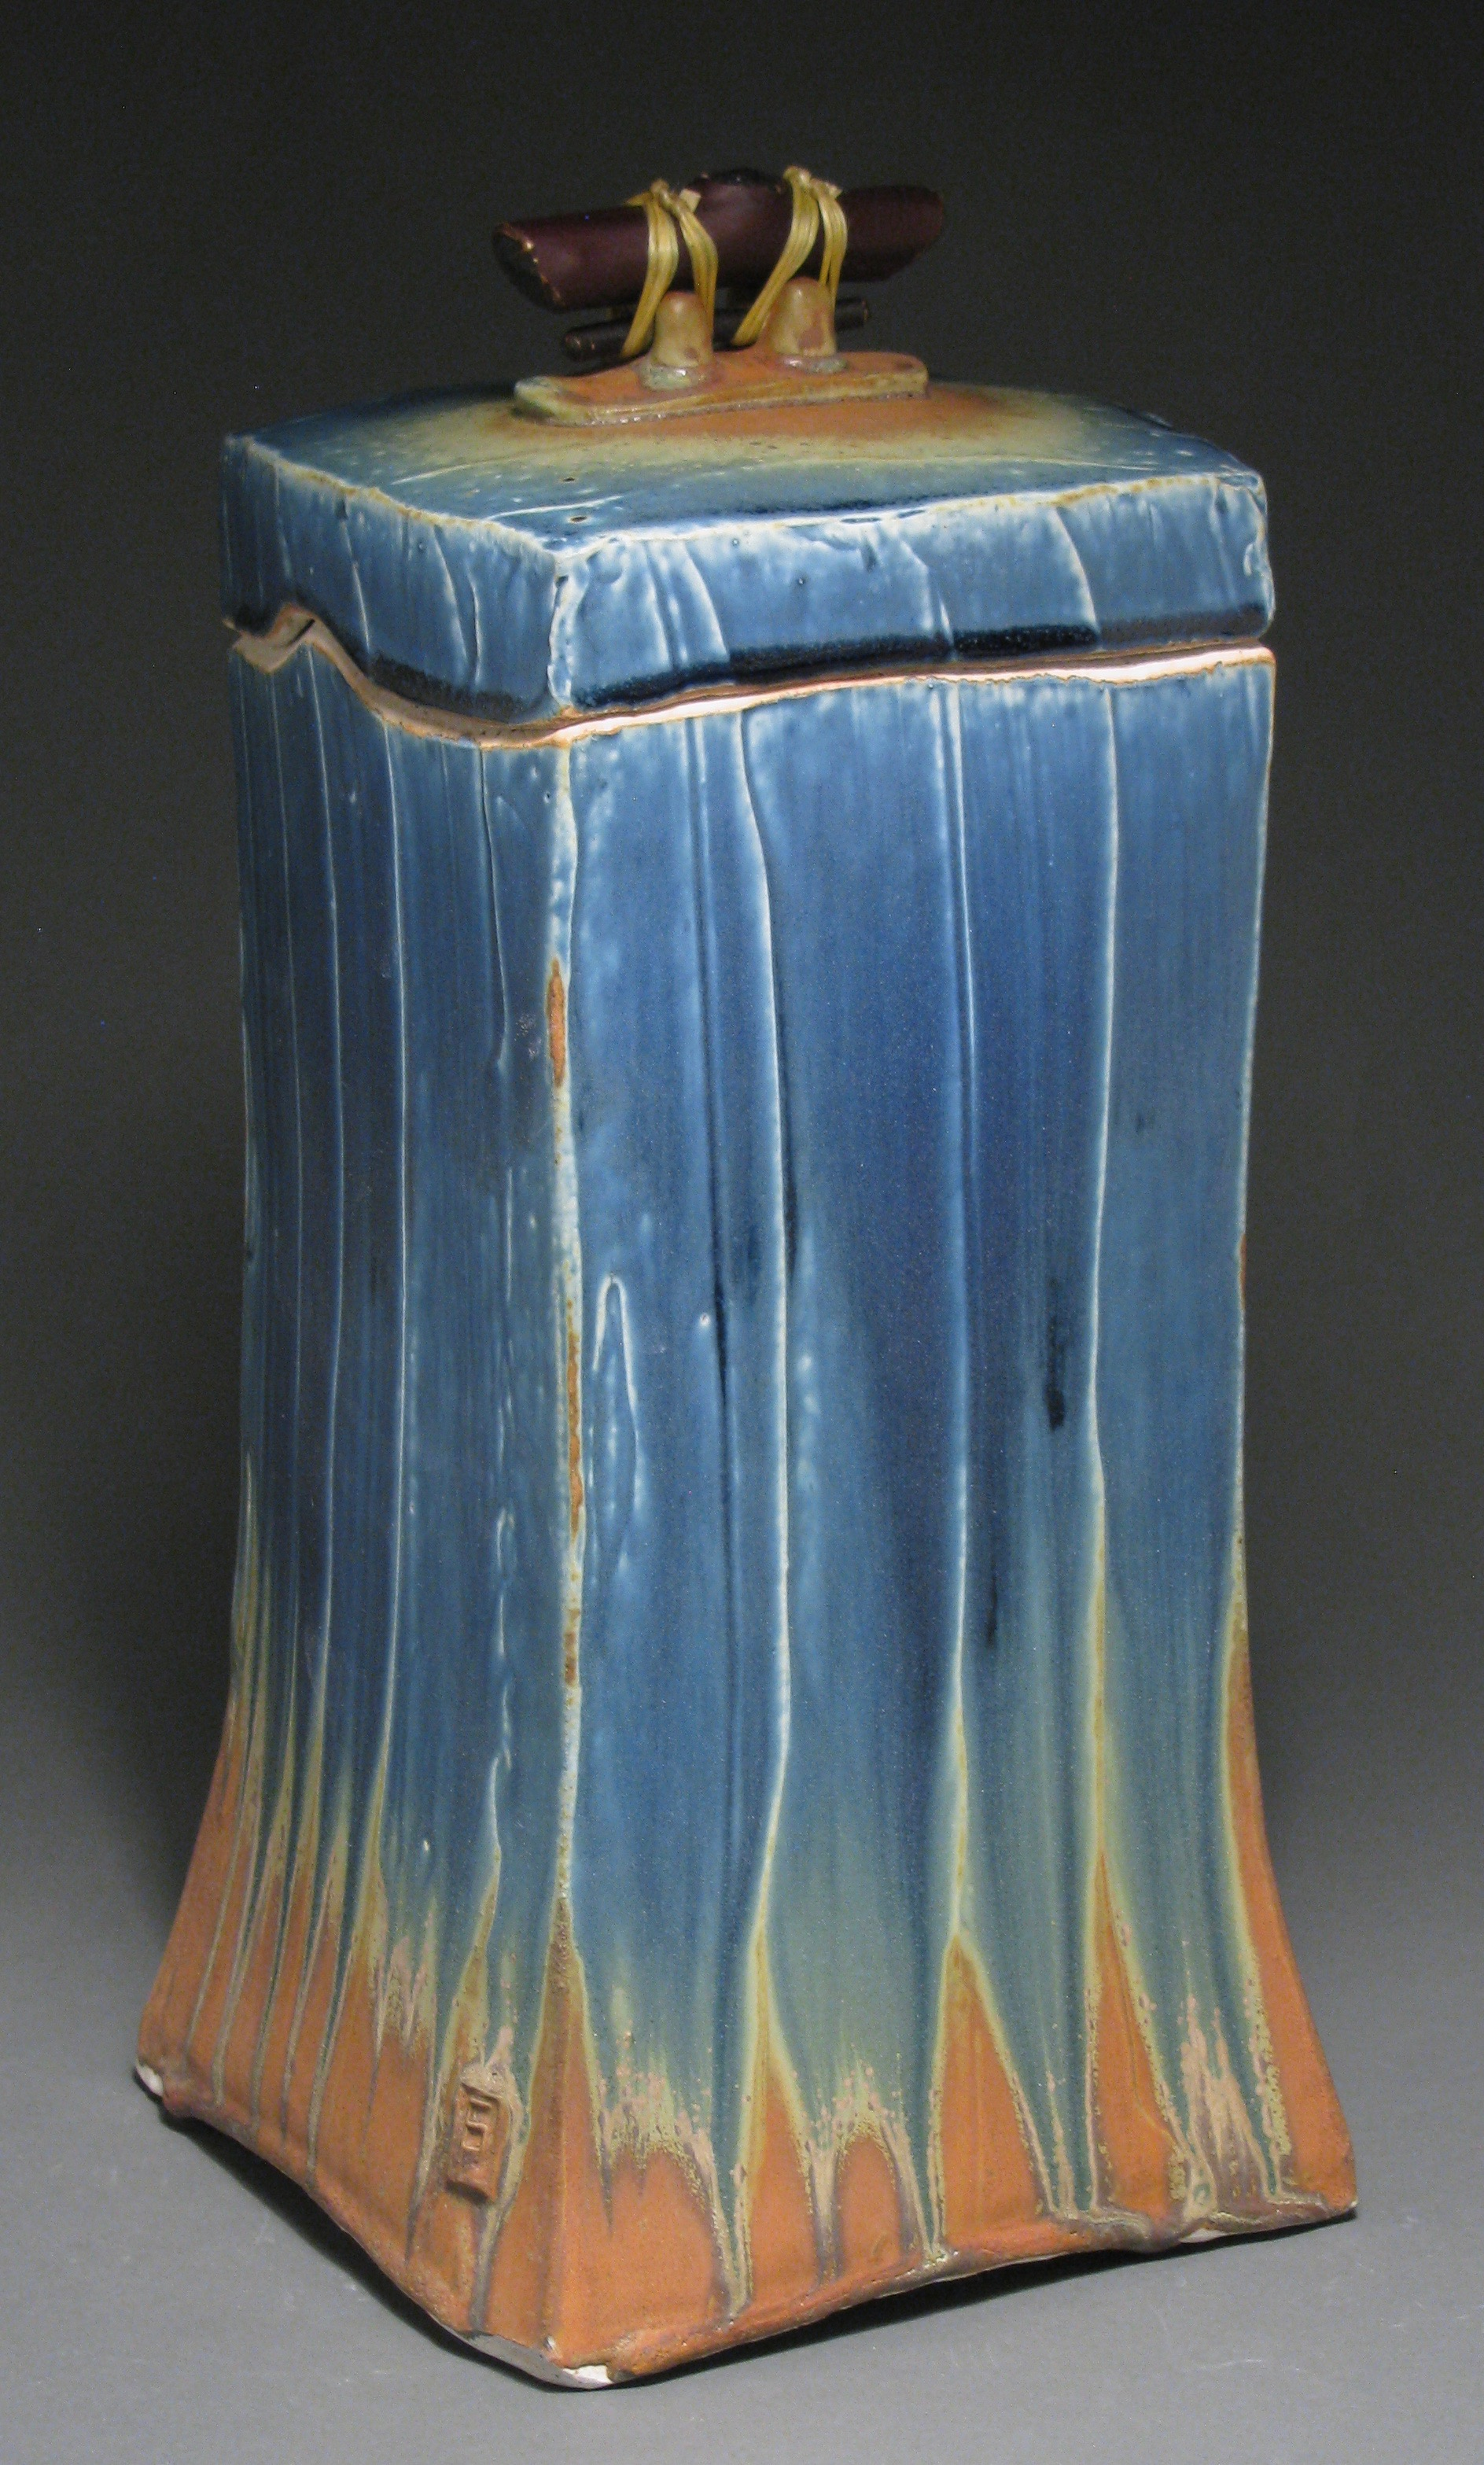 """Lidded box or funerary urn  13 1/4"""" tall by 6 1/4"""" deep by 6 1/4"""" wide  Glazes: Mixed blue and matte rust"""